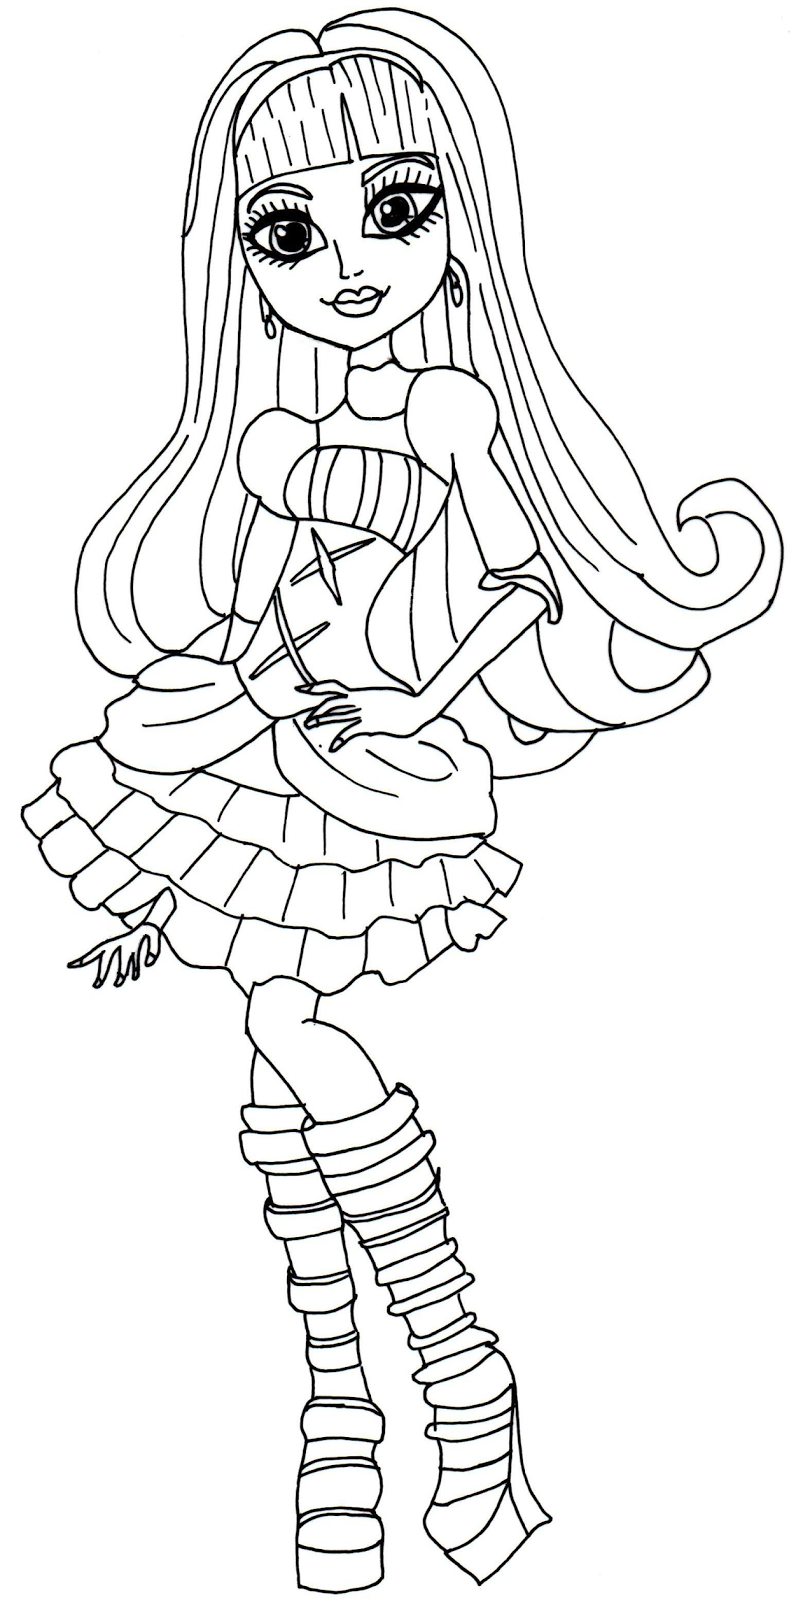 Monster High Coloring Pages 360coloringpages Monster High Coloring Pages 360coloringpages If Your C Coloring Pages Cartoon Coloring Pages Cool Coloring Pages